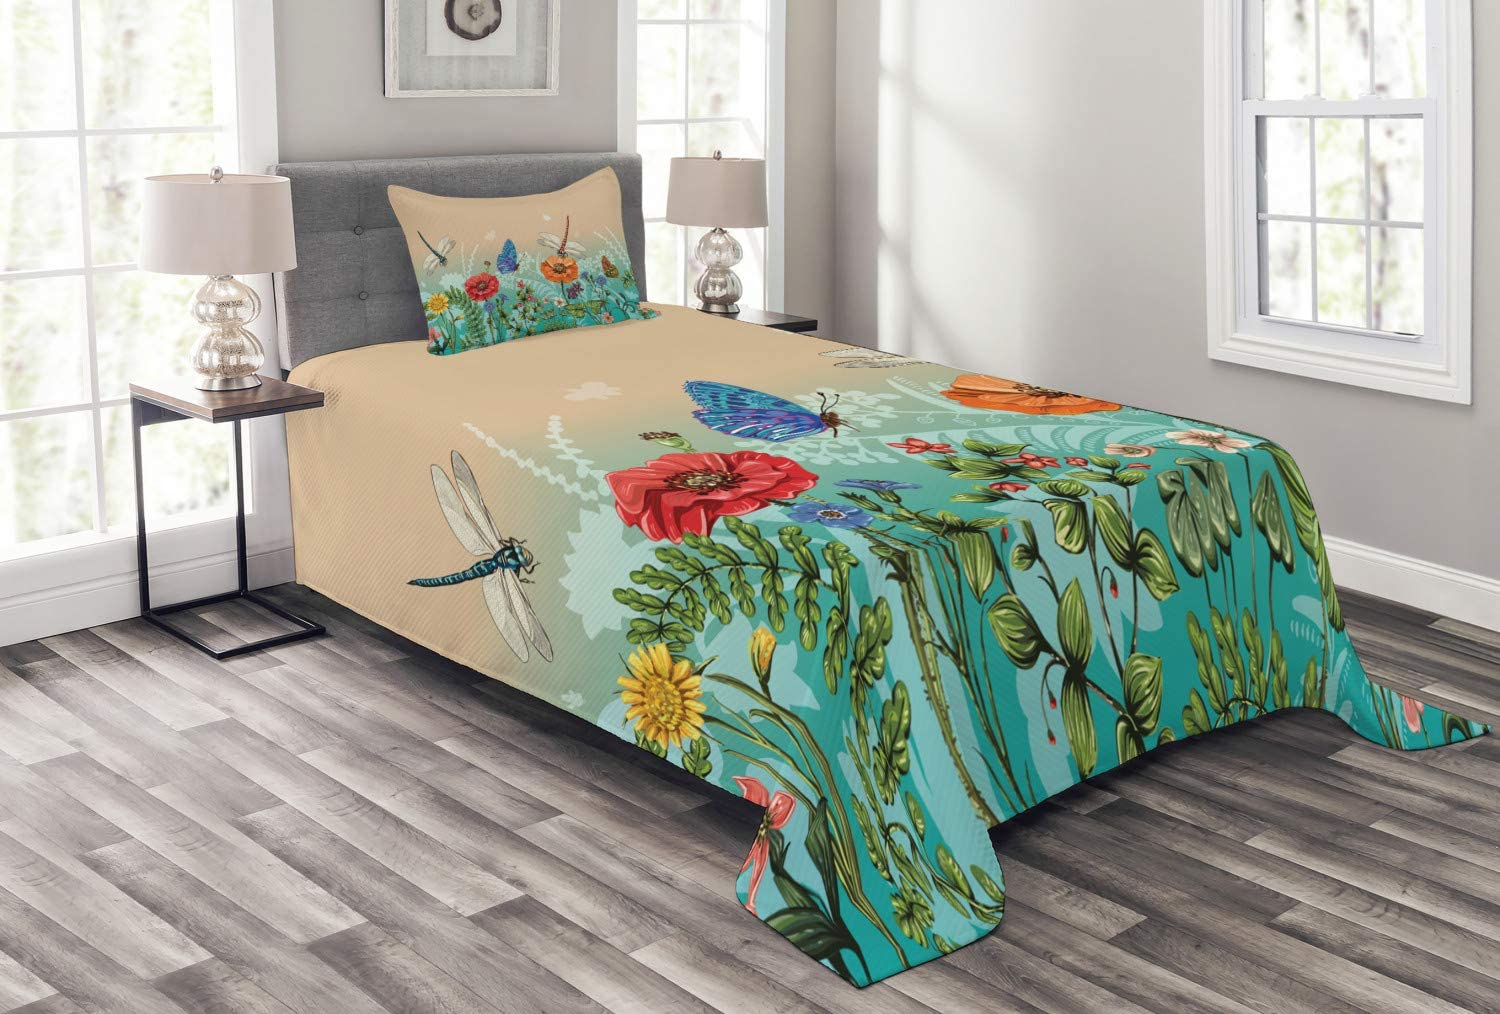 Ambesonne Spring Bedspread, Flourishing Nature Illustration with Butterflies and Dragonflies Colorful Pattern